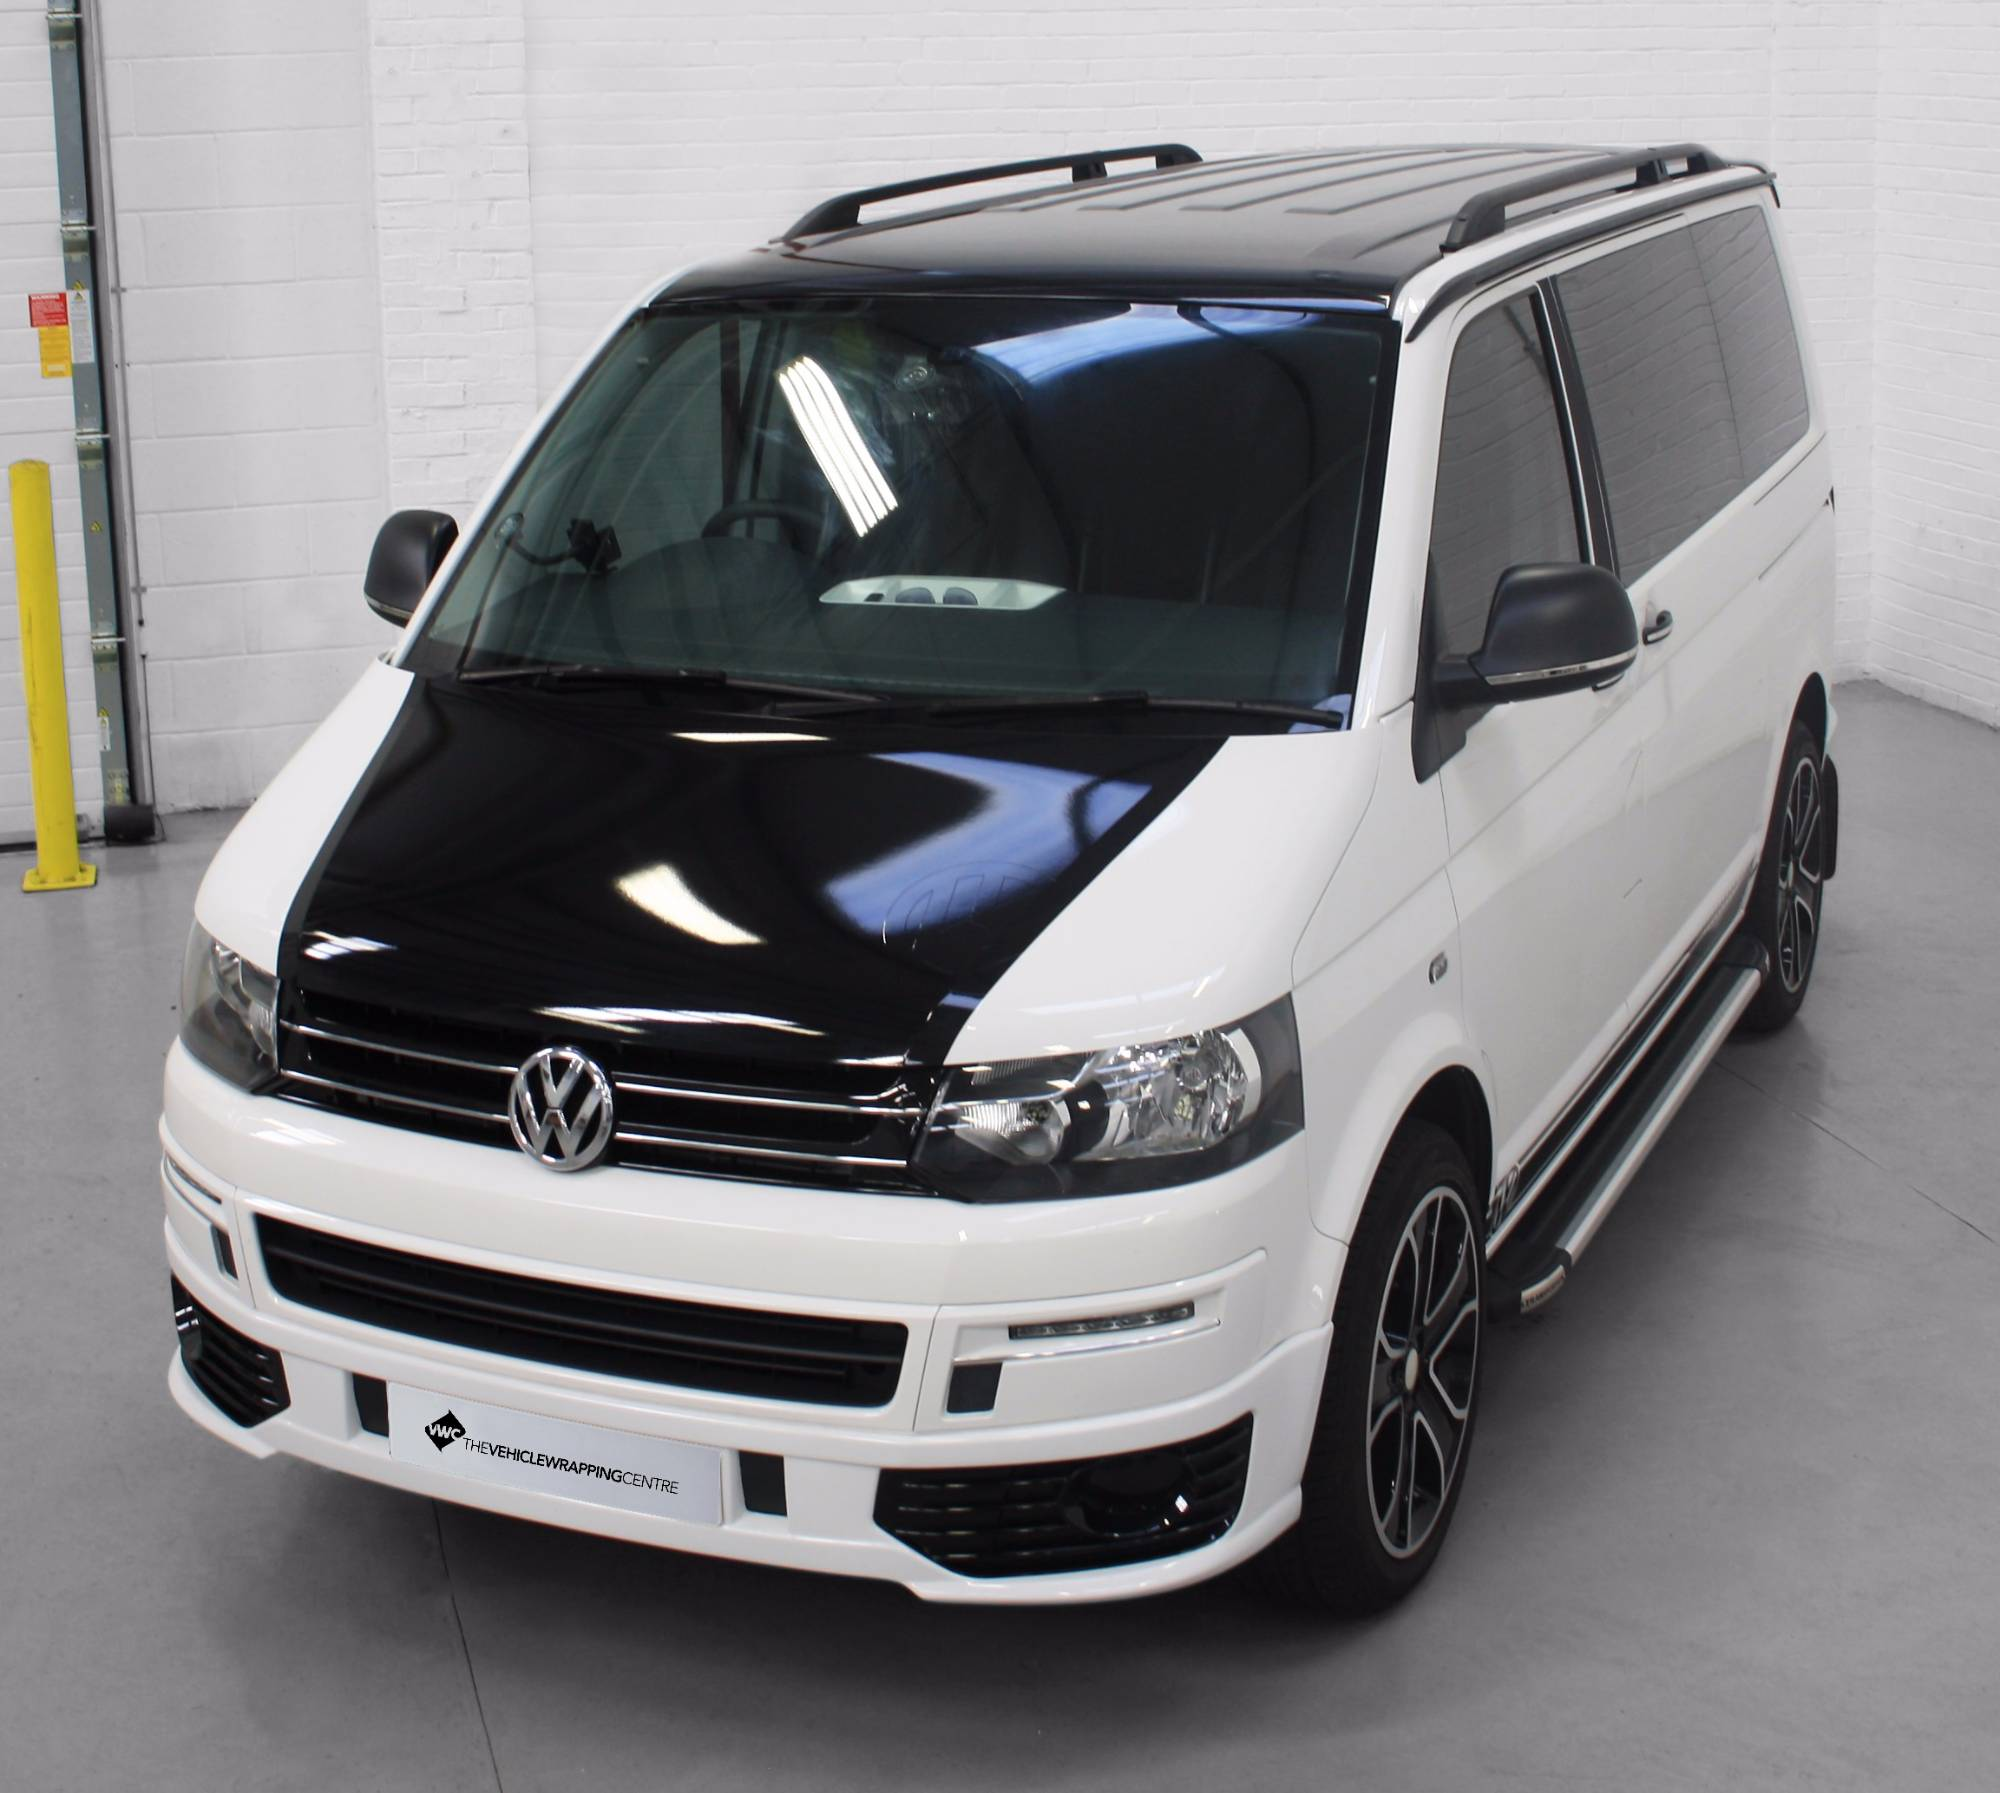 volkswagen t5 personal vehicle wrap project. Black Bedroom Furniture Sets. Home Design Ideas